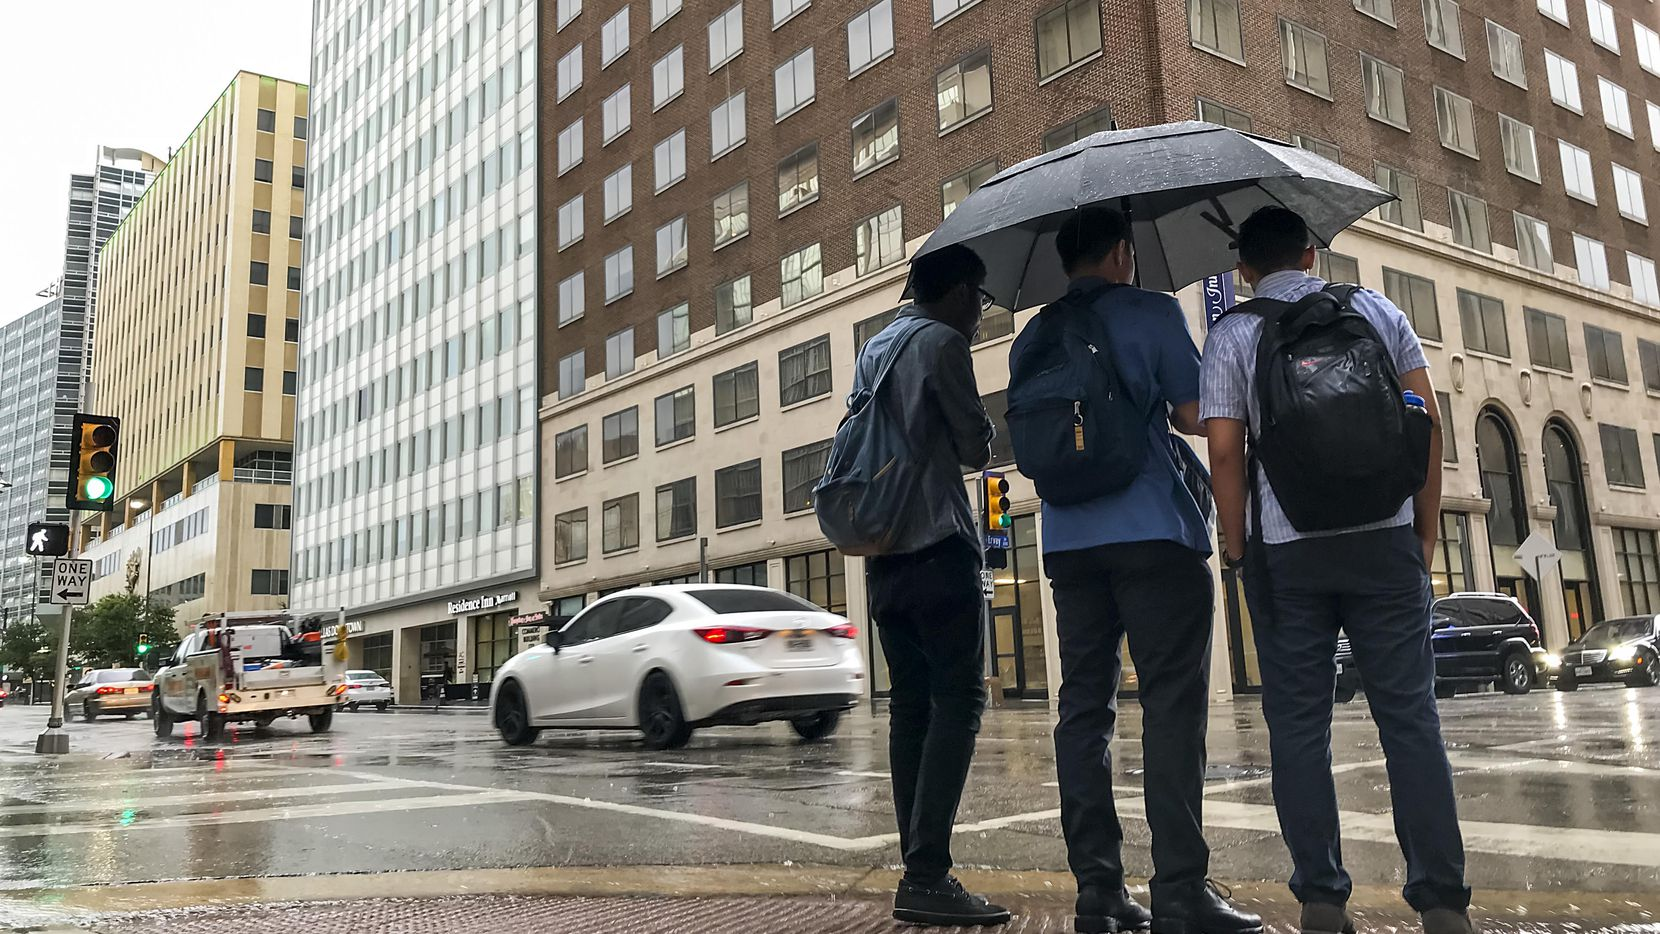 Pedestrians try to take cover from the rain as a thunderstorm rolls through downtown Dallas.